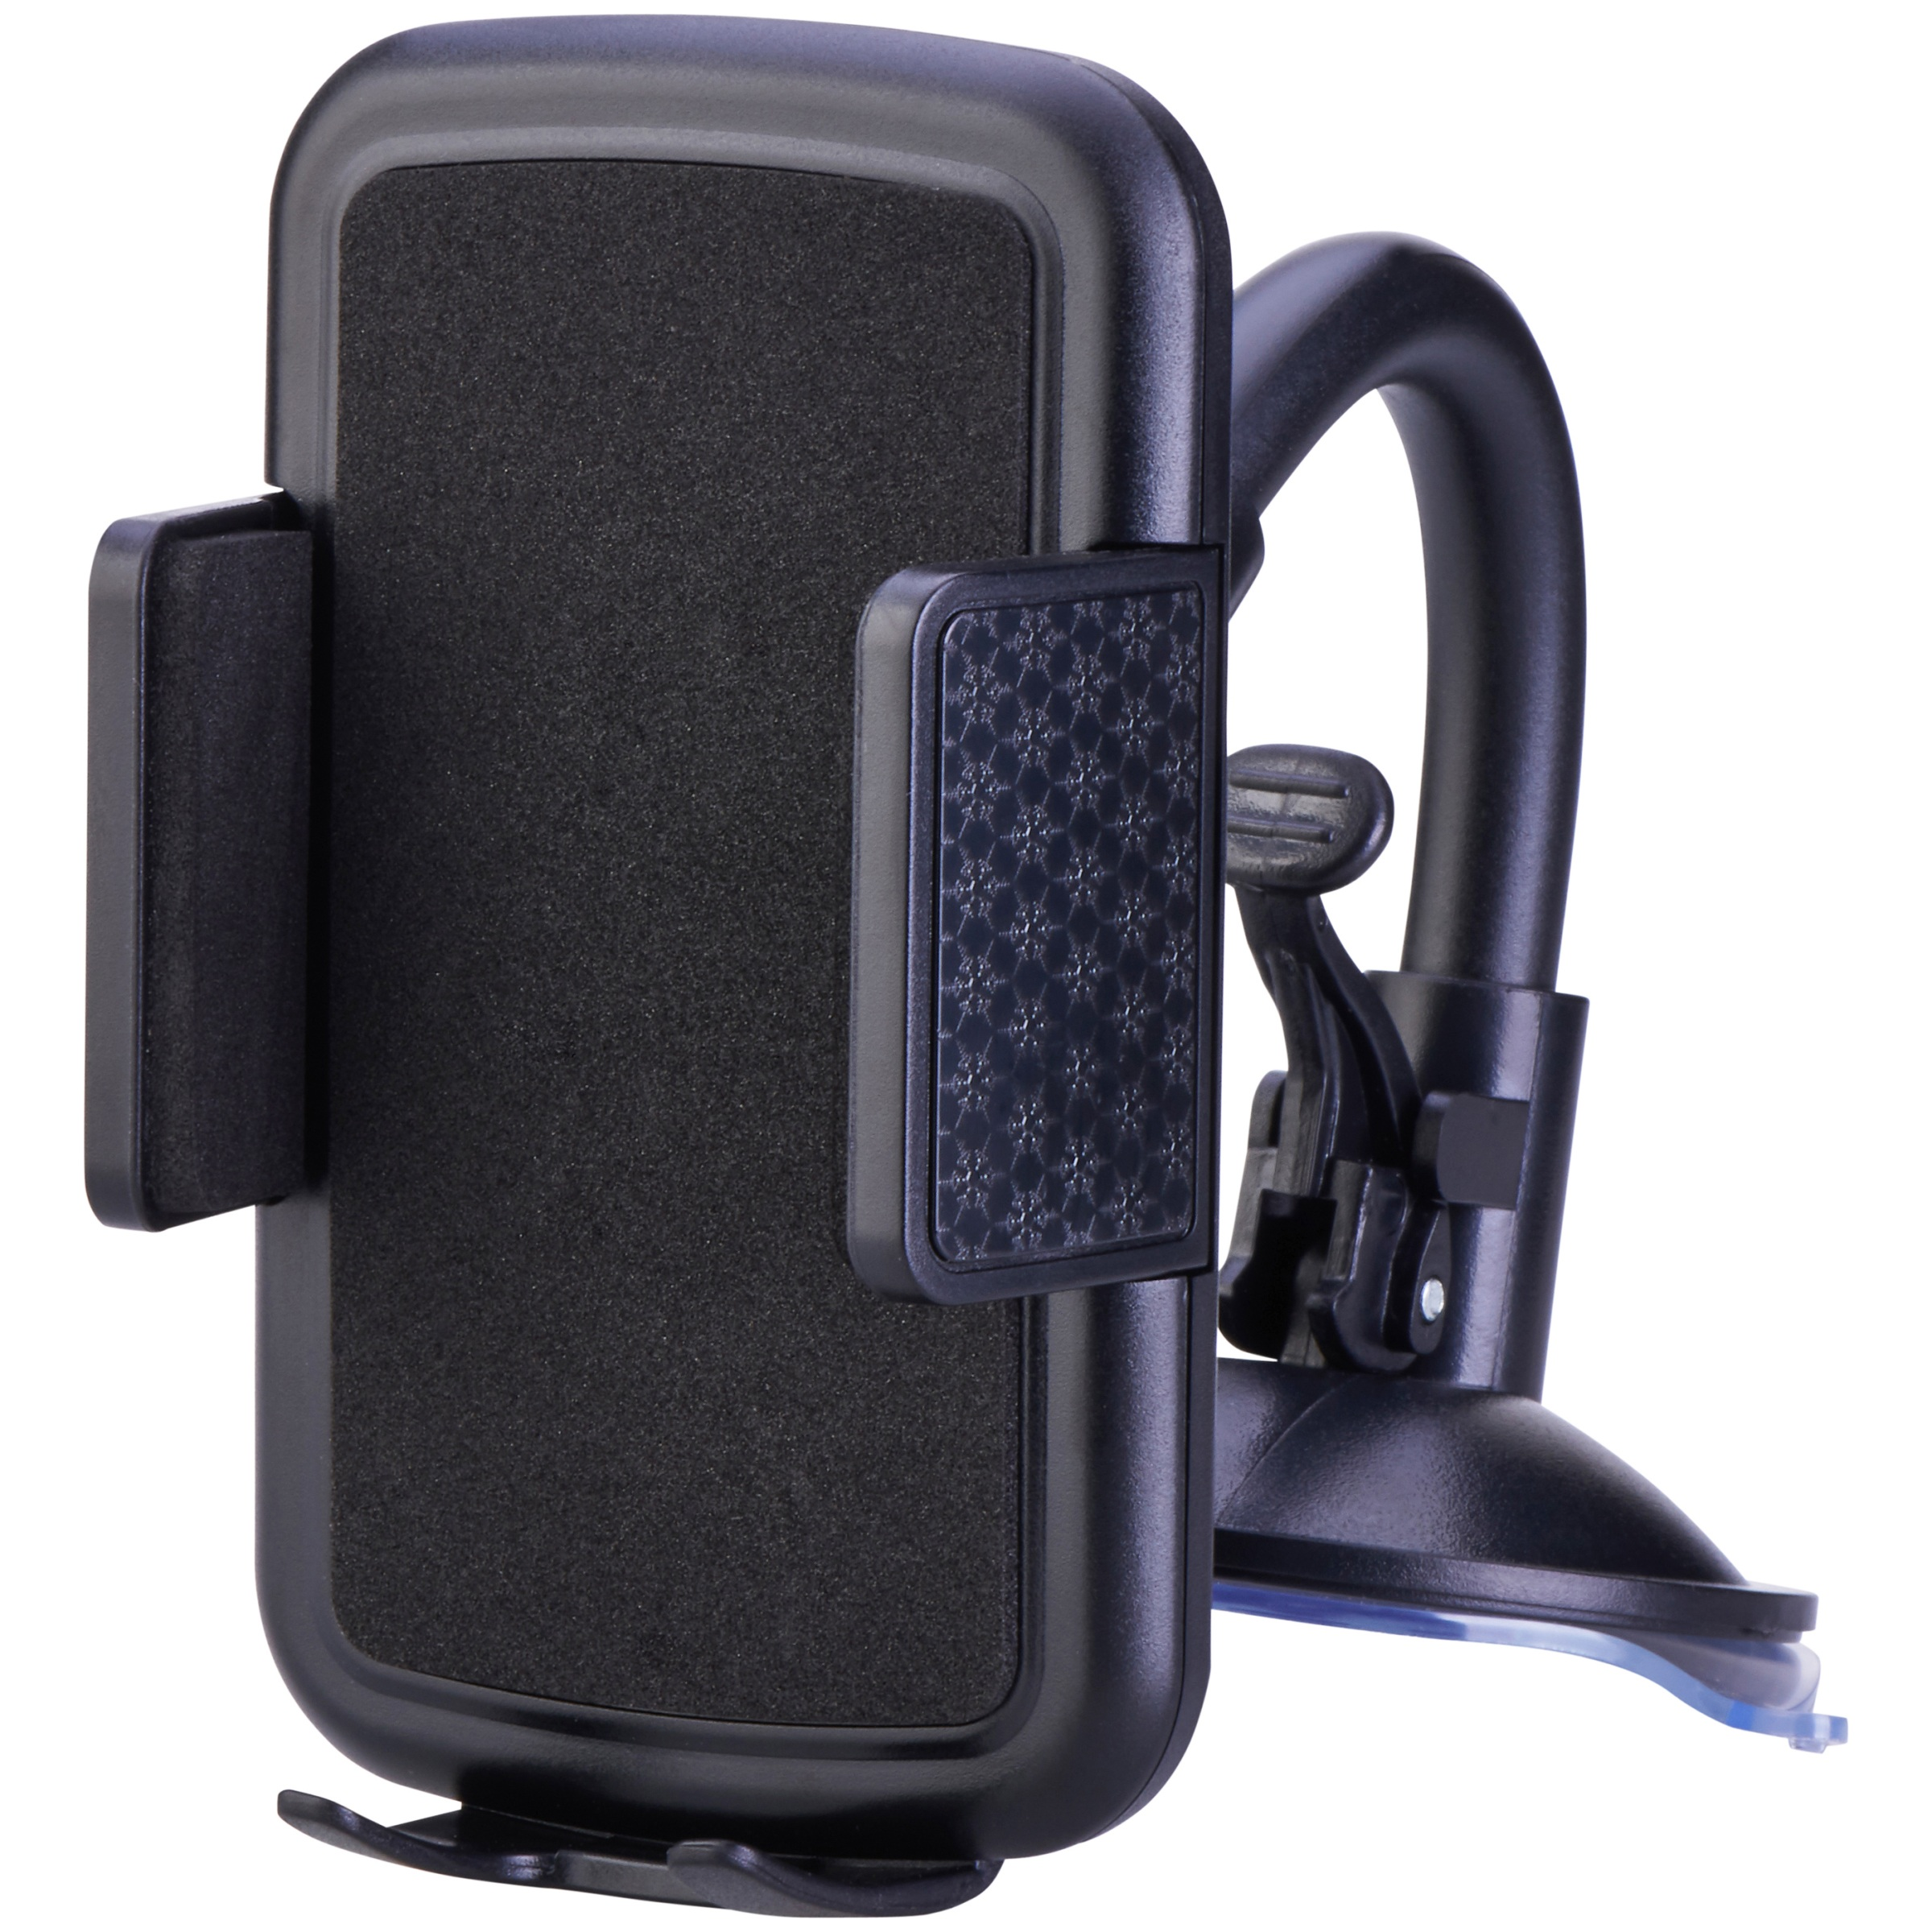 ONN Window or Dash Mount Mobile Device Holder, Sturdy Base for Secure Mount